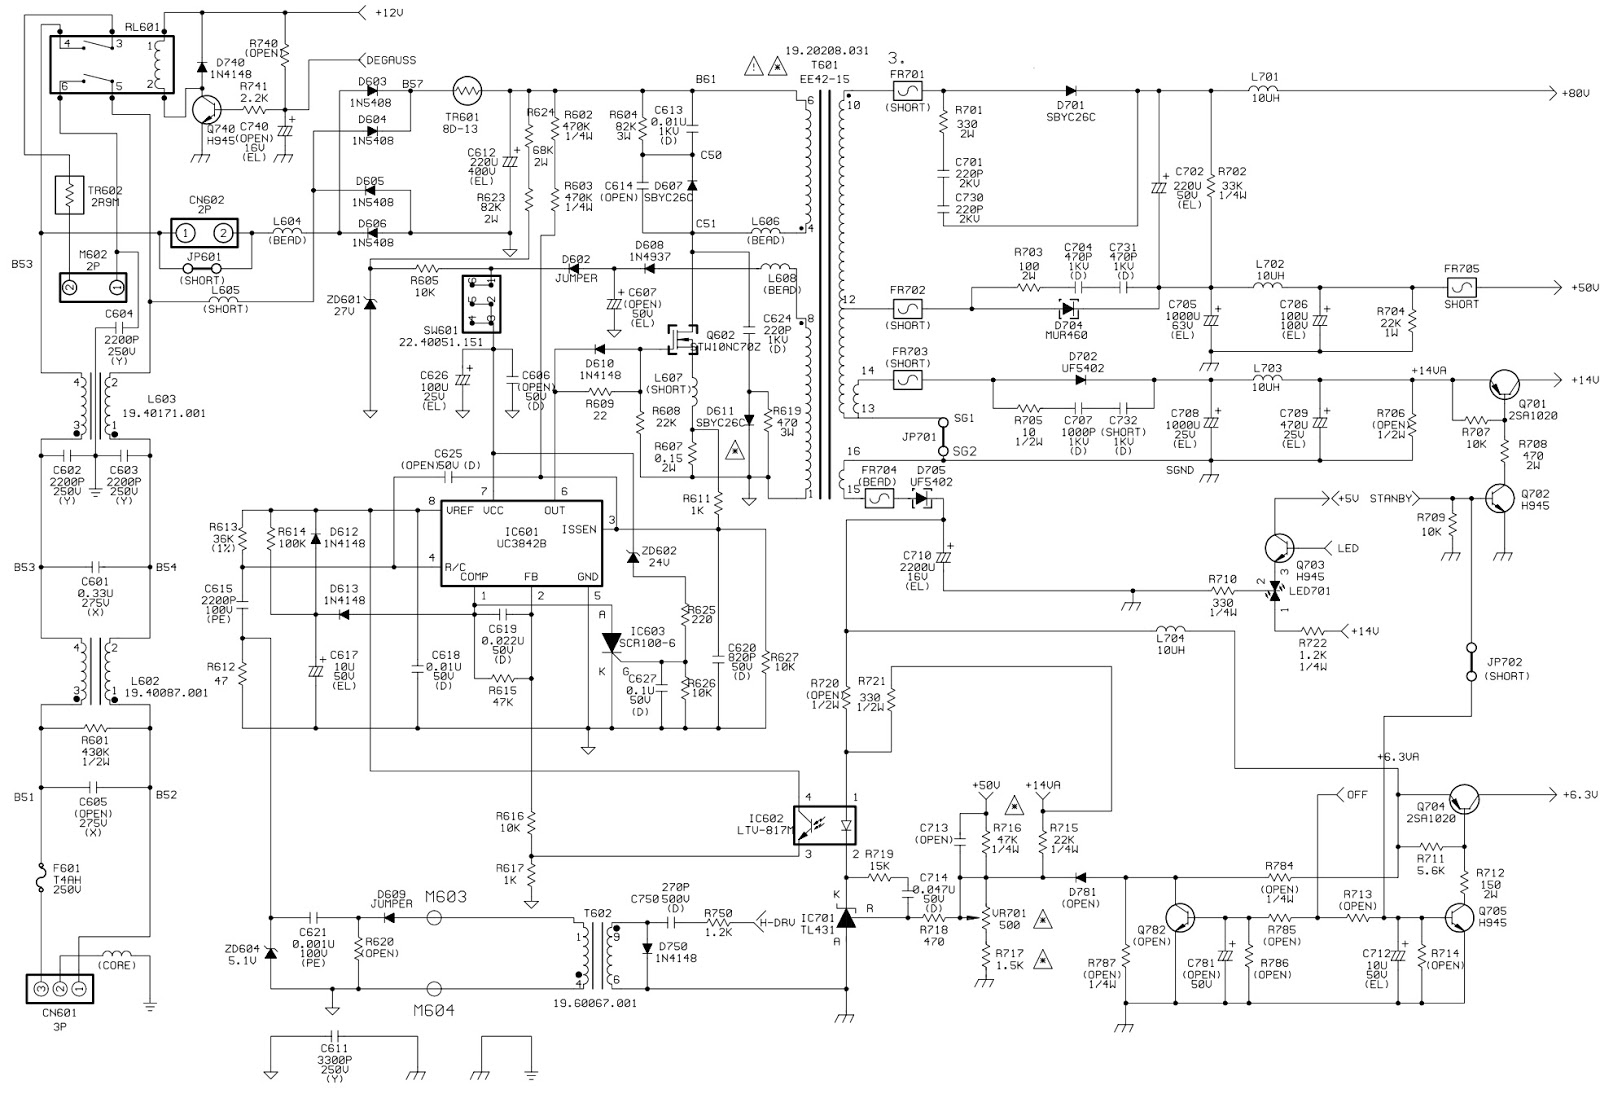 FIG 2 benq, mitsubishi 1786fd2 diamond view crt monitor circuit battery monitor circuit diagram at readyjetset.co